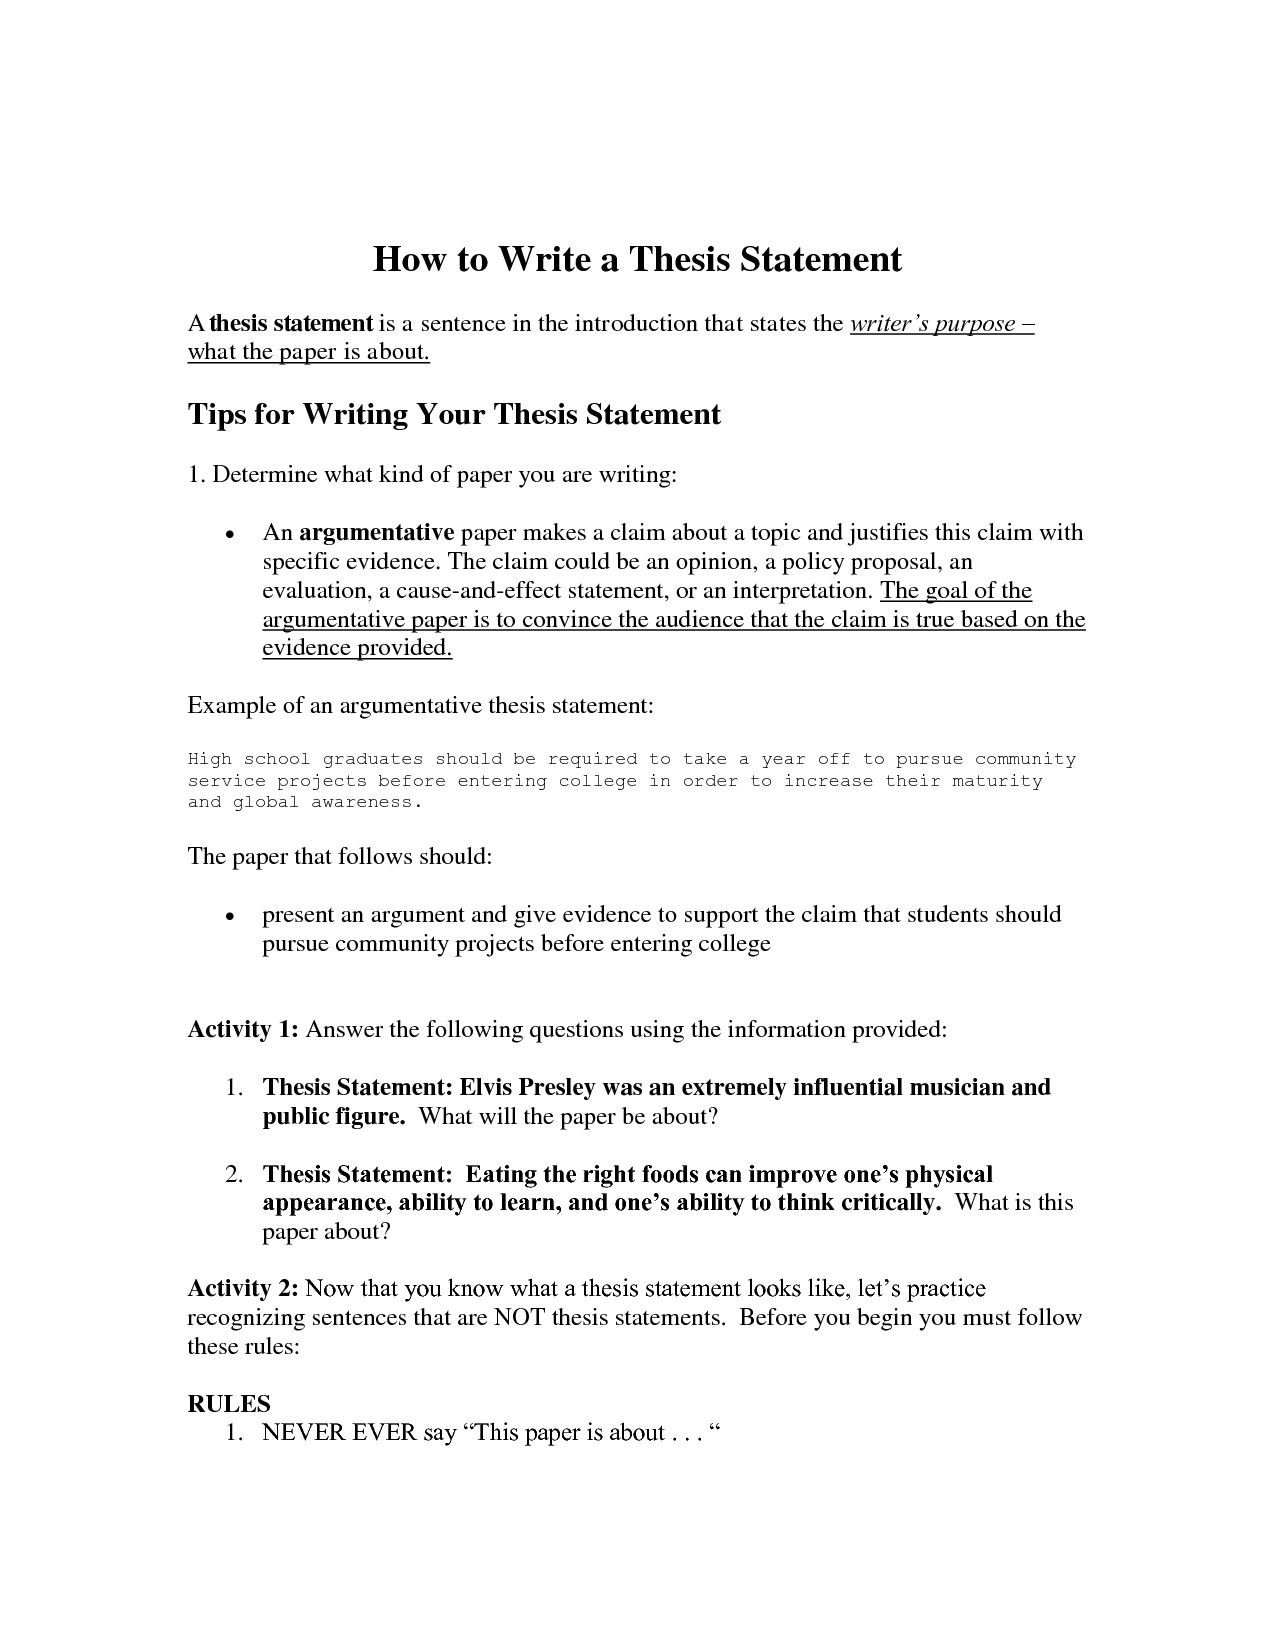 Writing A Thesis Statement Worksheet In 2020 | Writing A